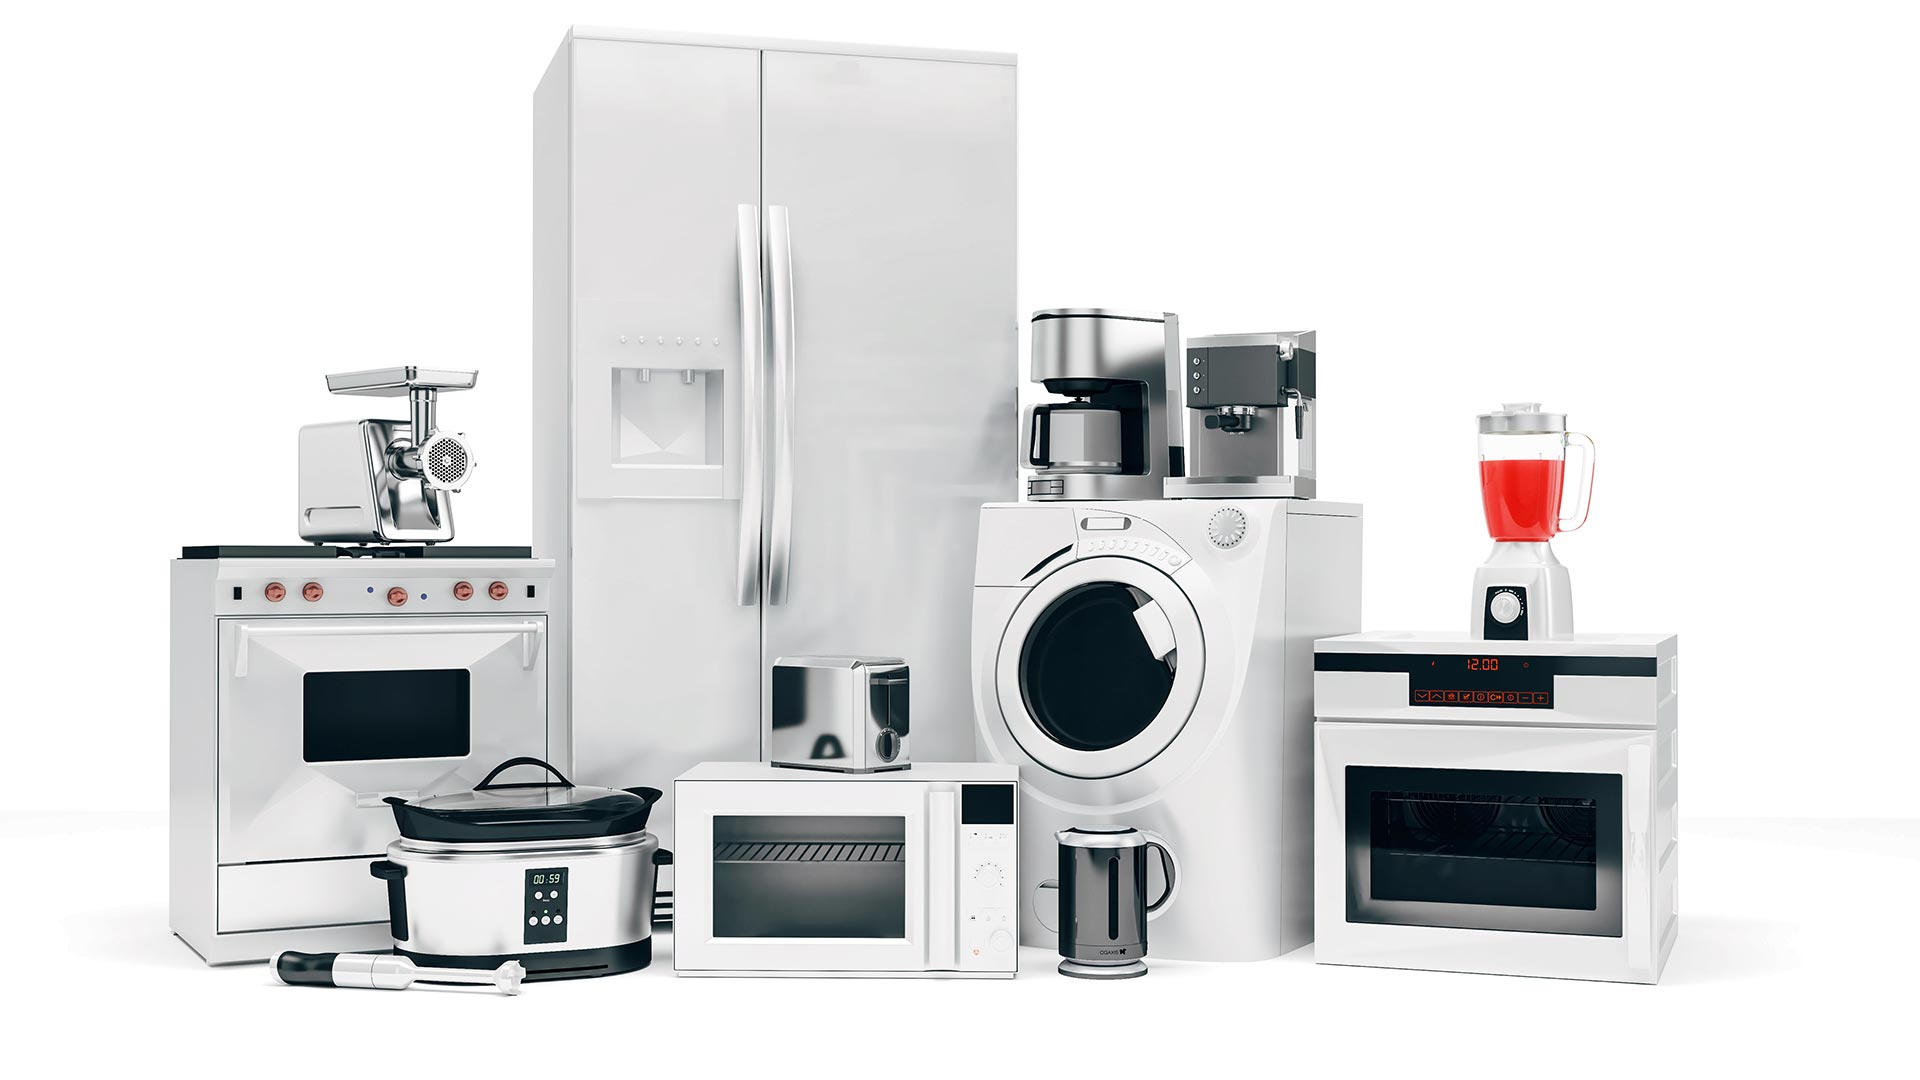 Electronics and home appliance